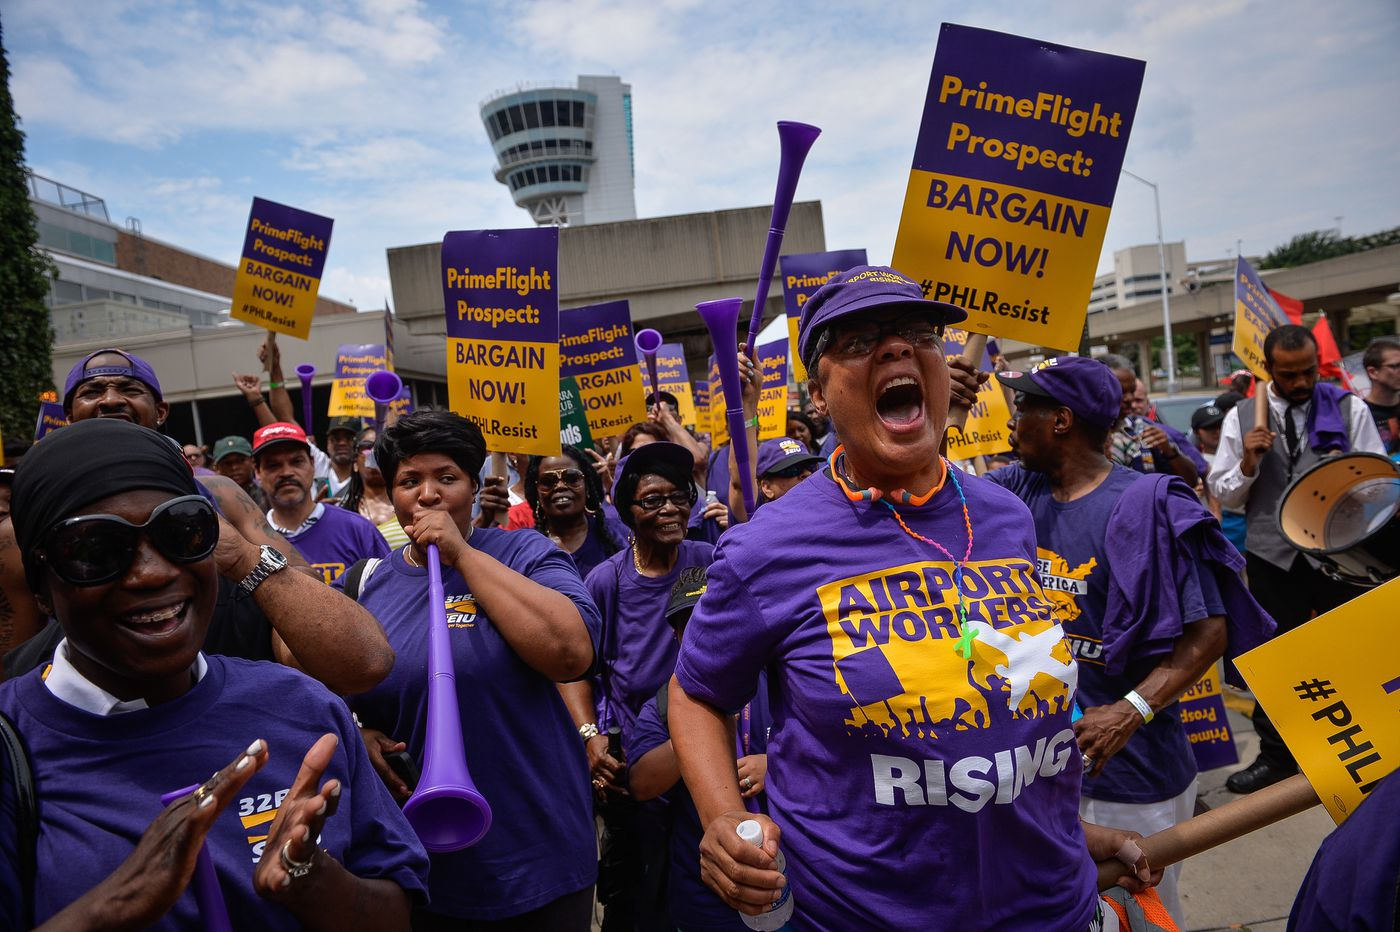 Mayor Kenney wants to raise minimum wage for city contractors to $15/hour